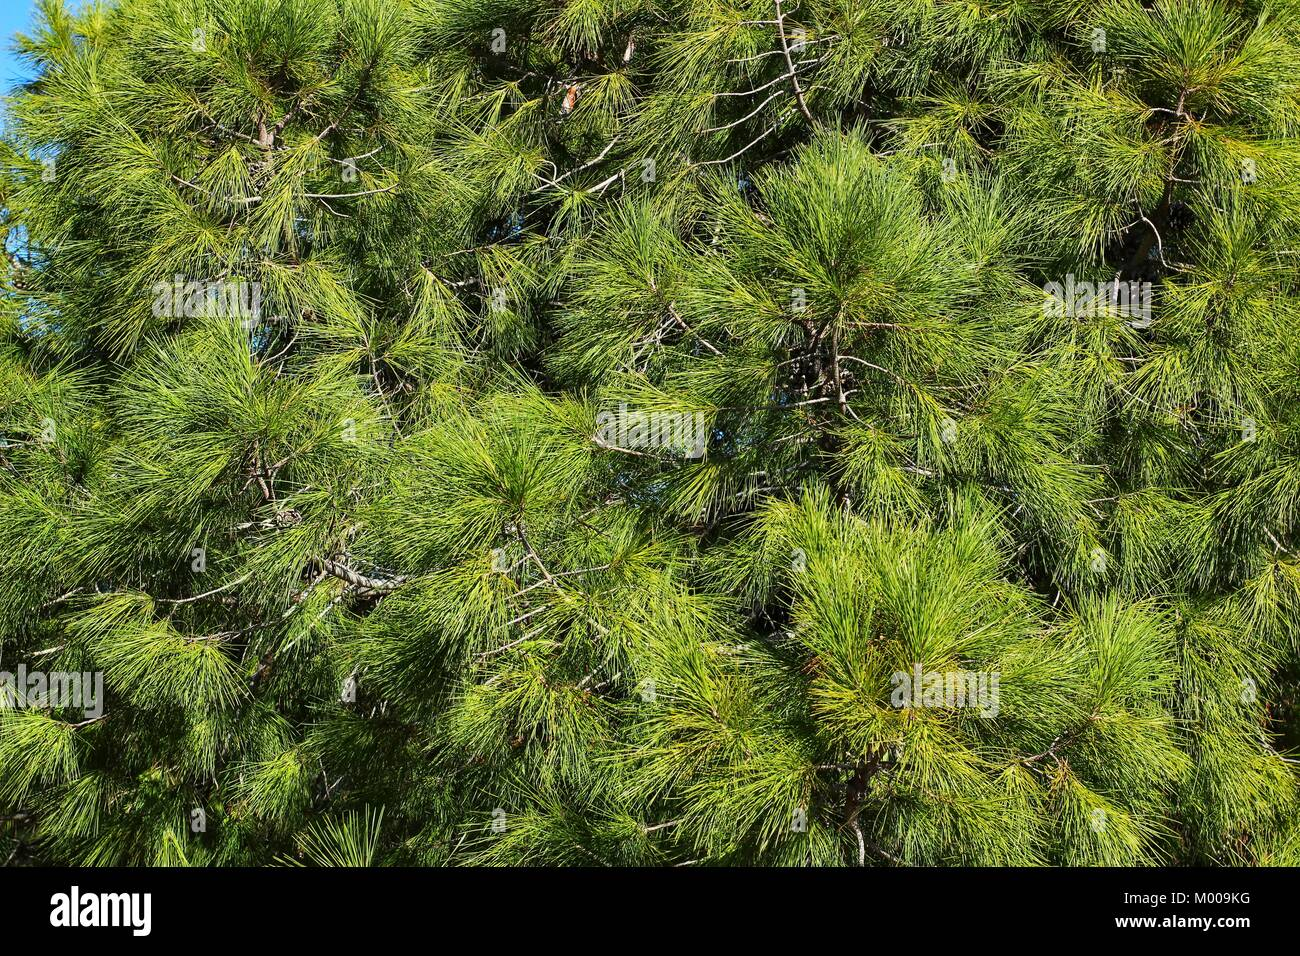 Pinus Halepensis in the mountain under the sun in Alicante - Stock Image